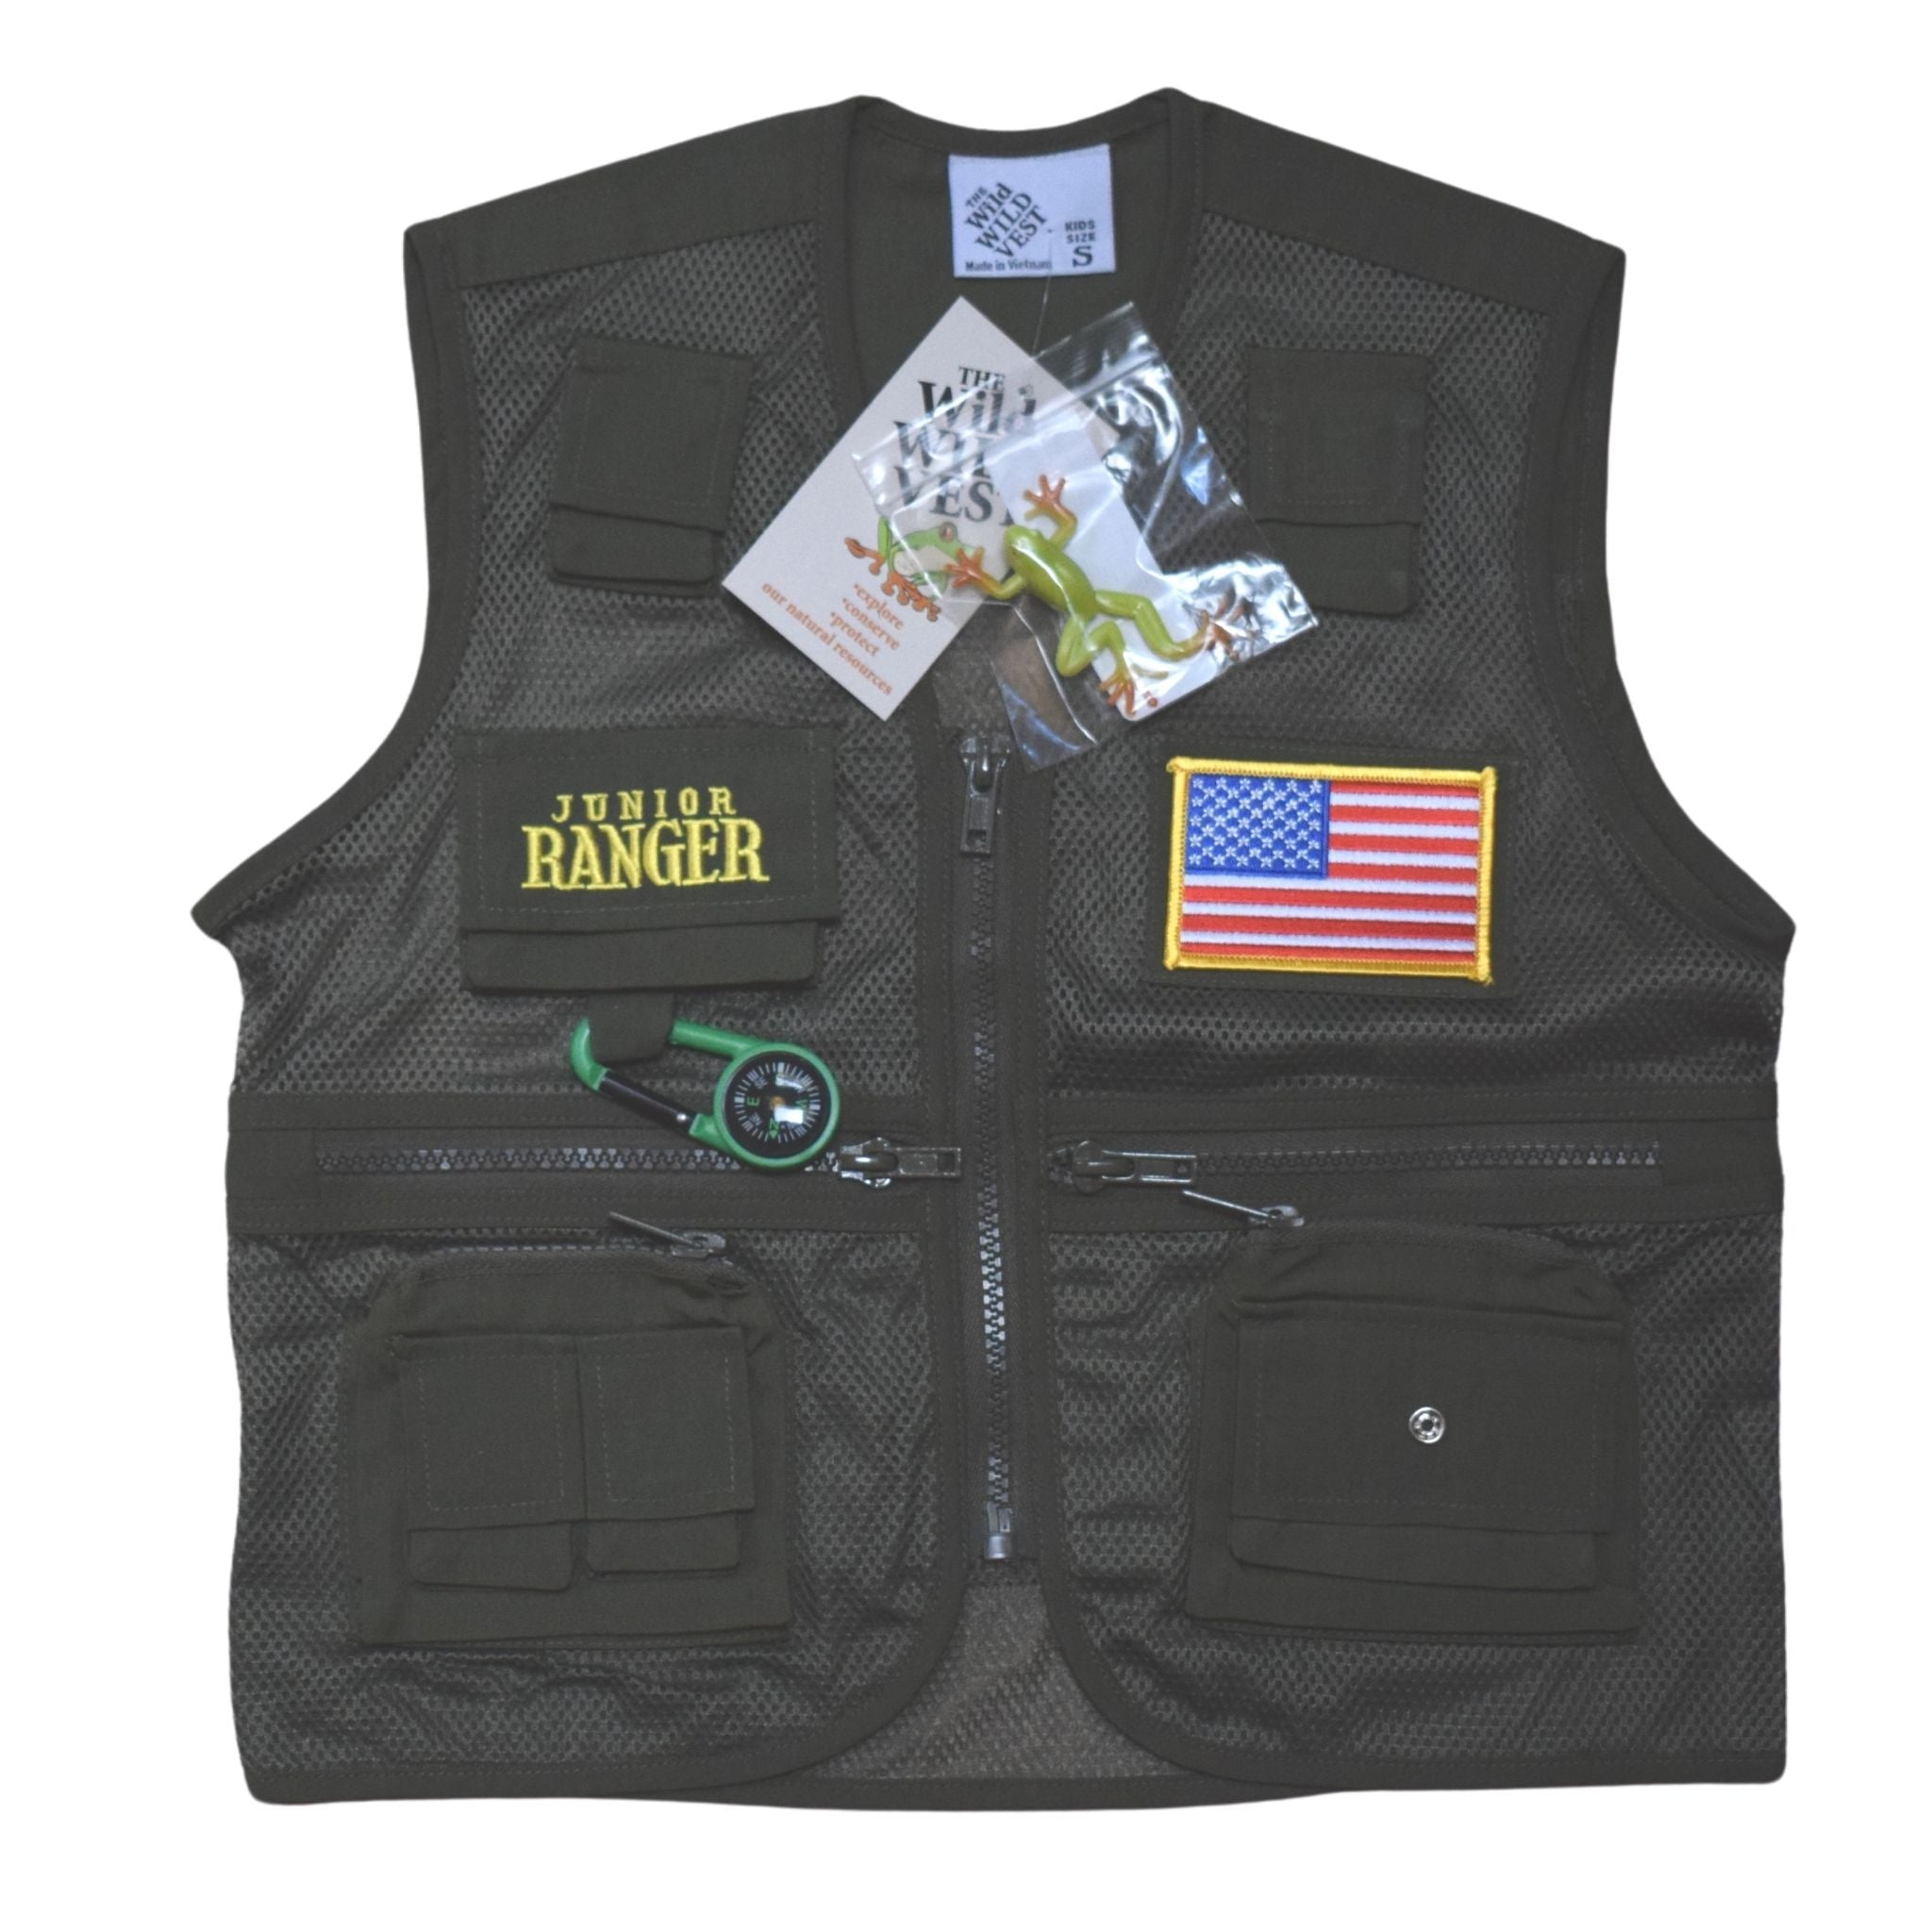 Jr Ranger Vest - Park Ranger Green with American Flag